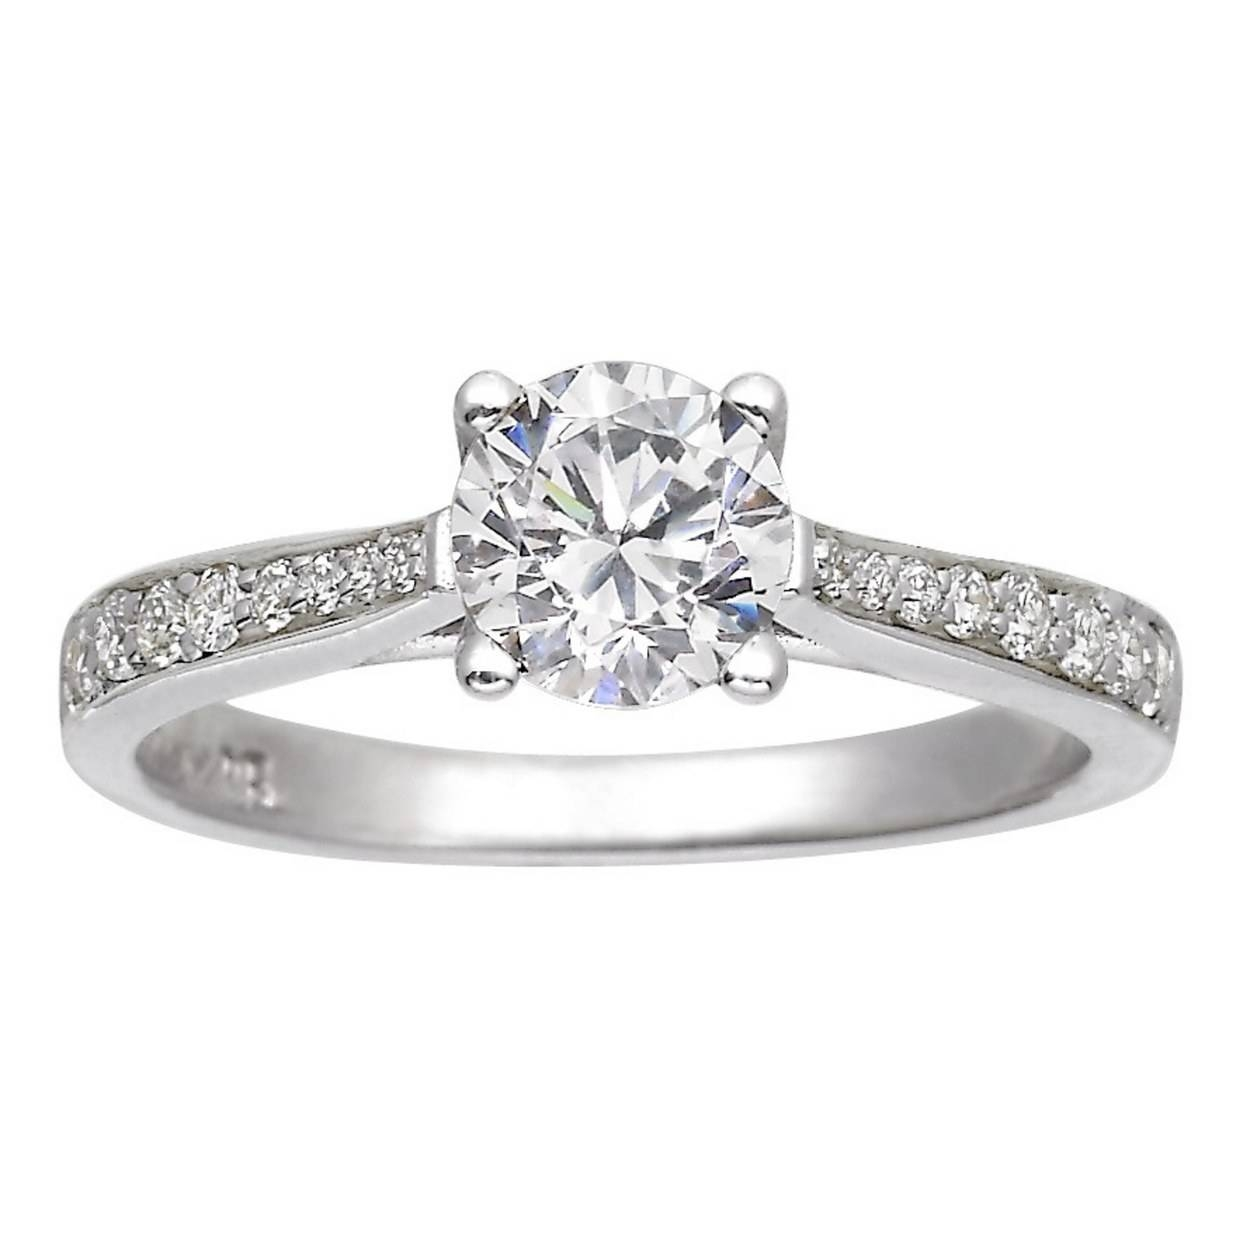 62 Diamond Engagement Rings Under $5,000 | Glamour Inside Square Wedding Rings For Women (View 1 of 15)